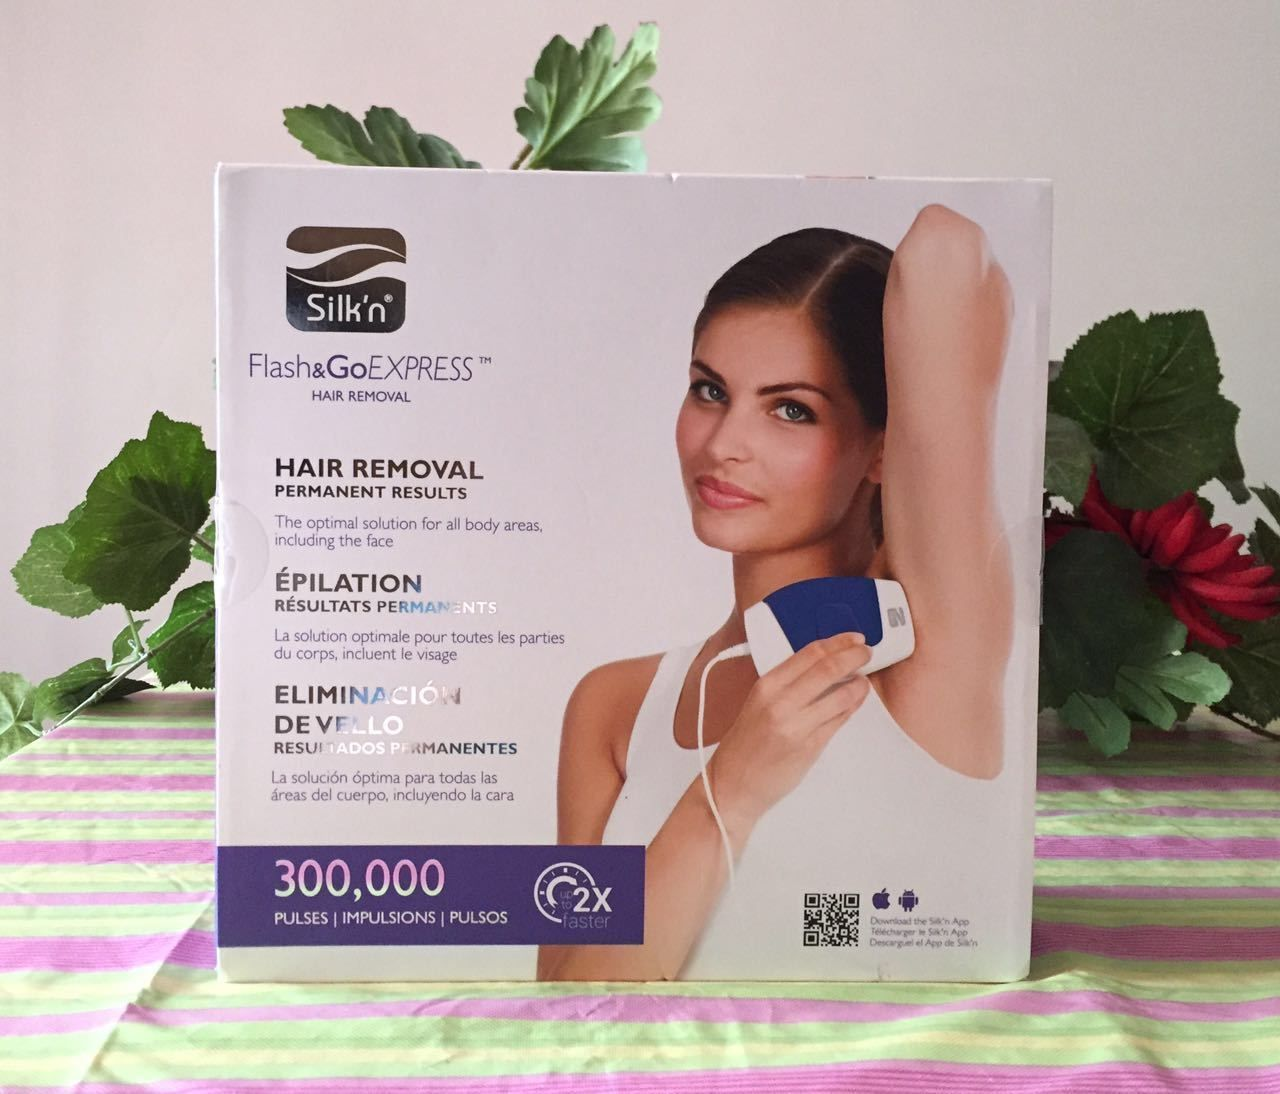 Laser Hair Removal and IPL New Silk N Flash And Go Express Hair